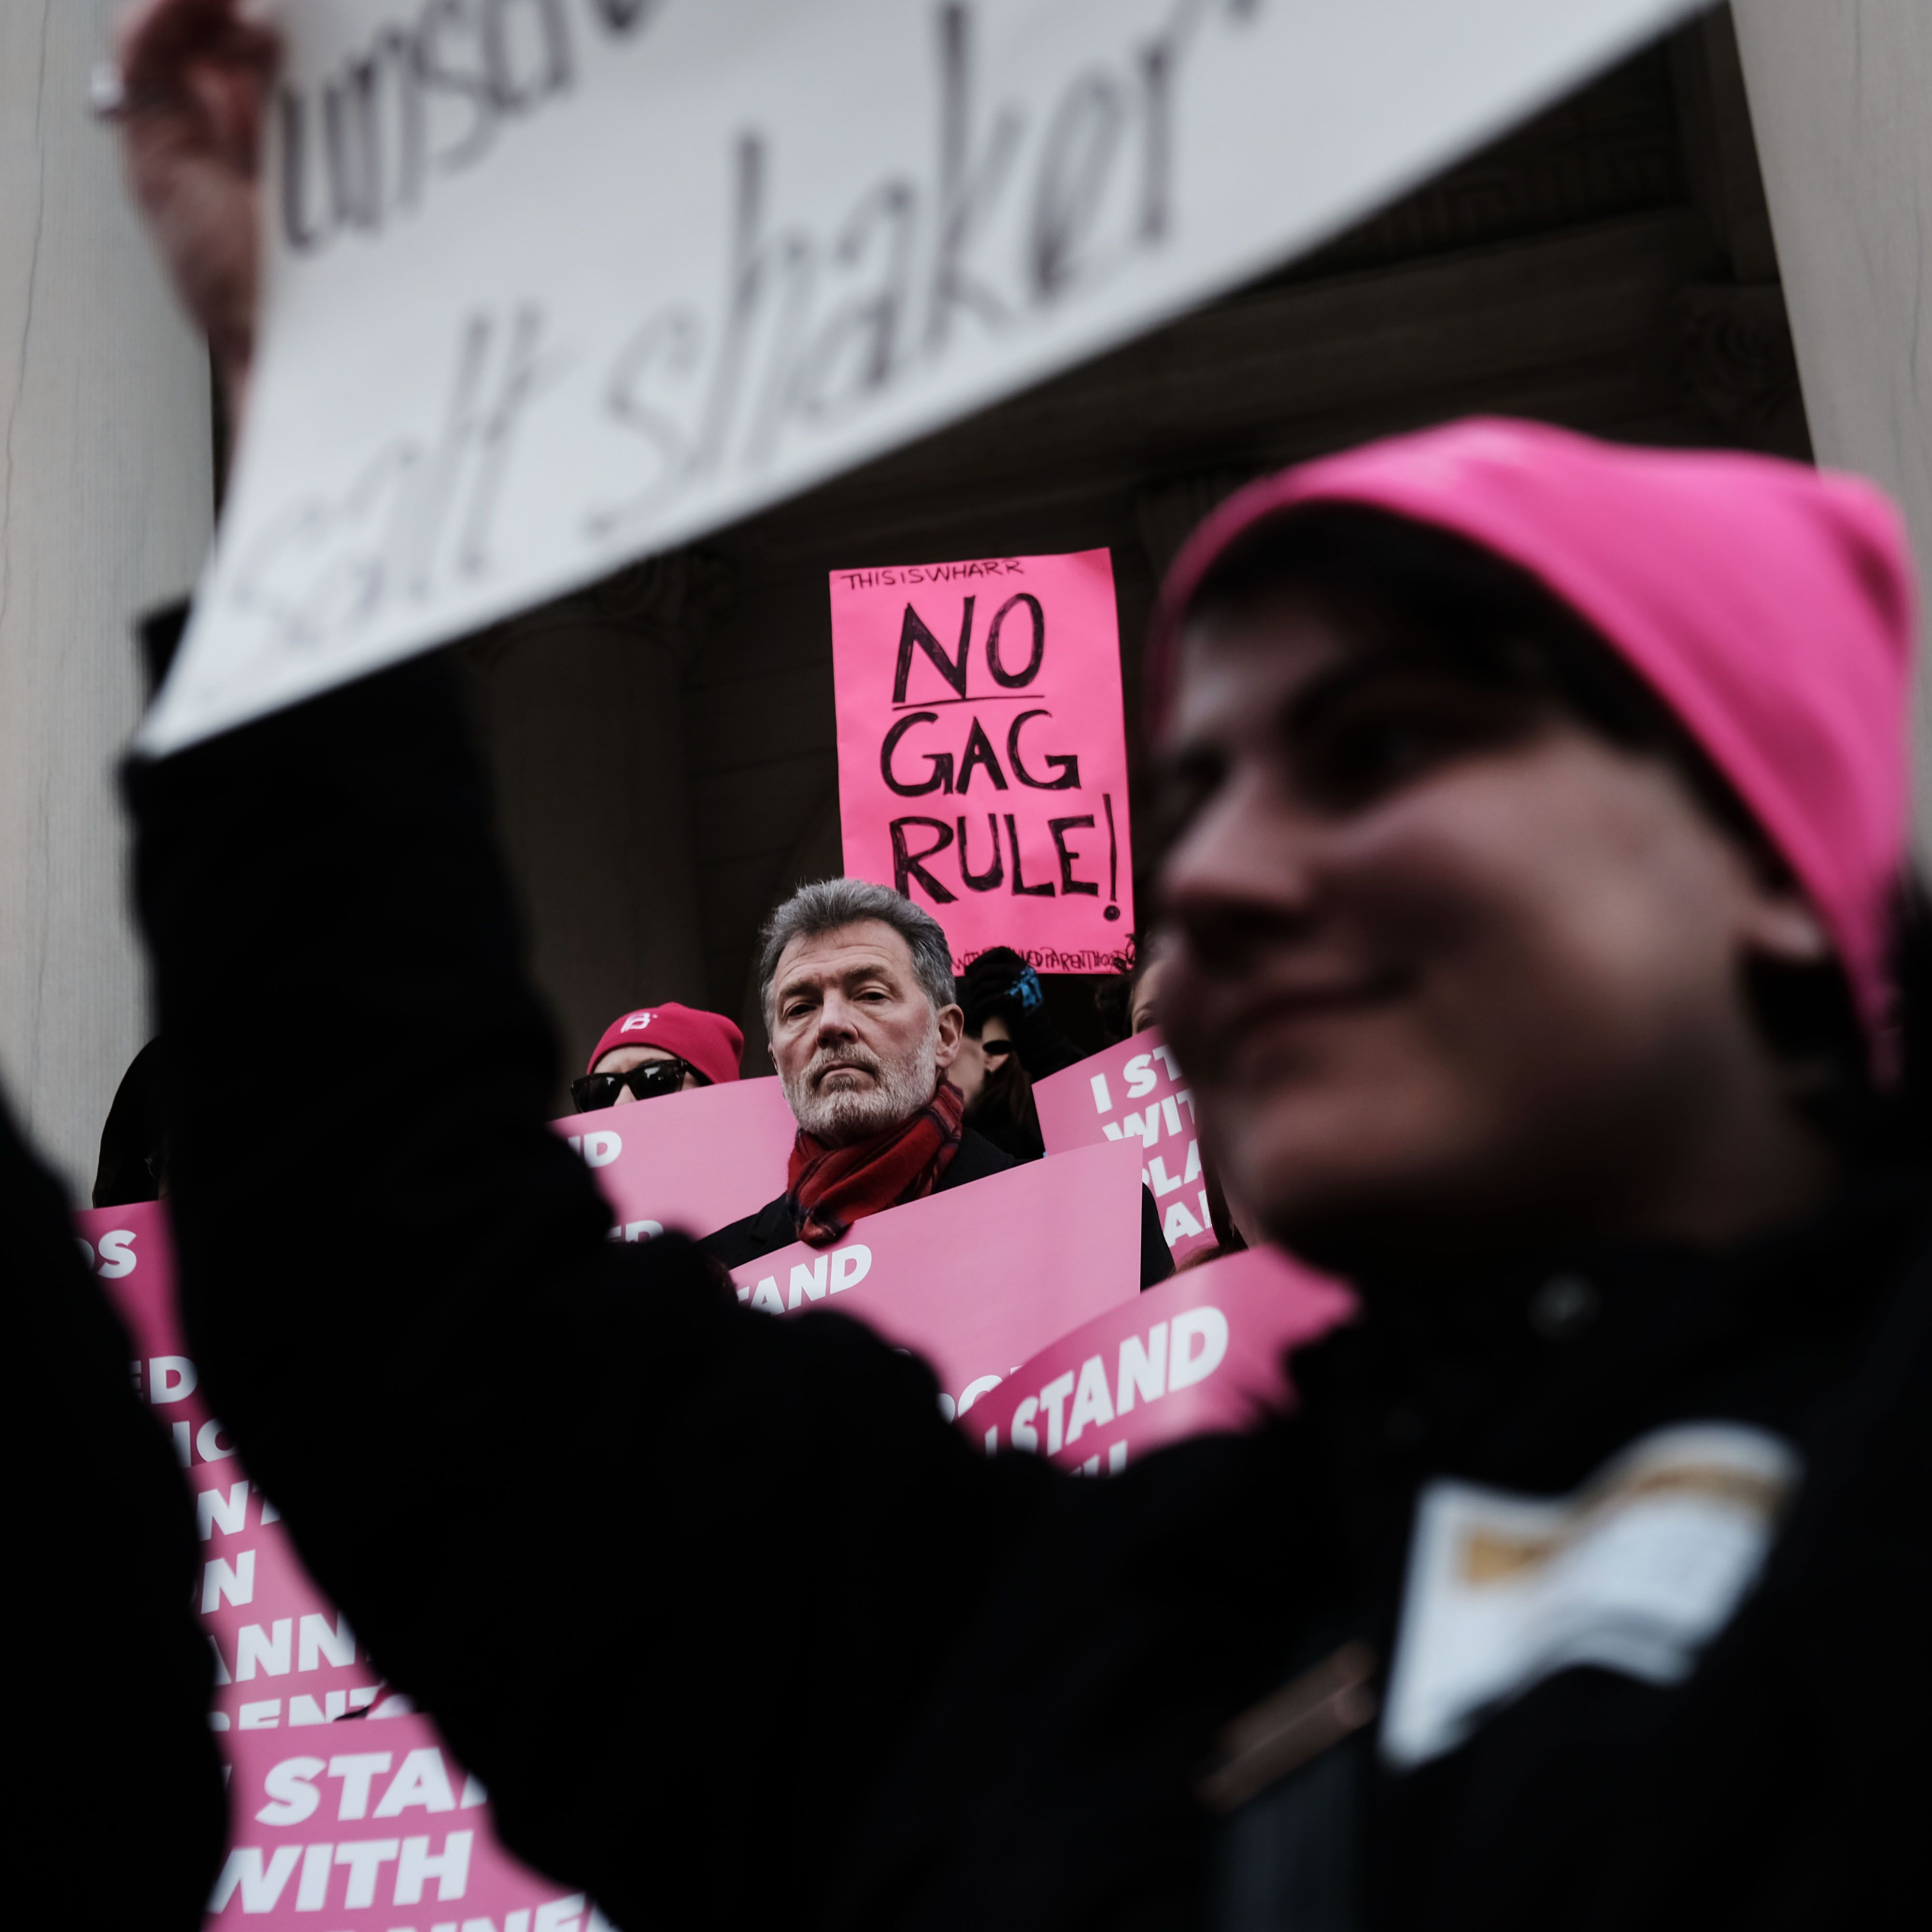 How Planned Parenthood's Loss of Title X Funding Will Affect 1.5 Million Low-Income Women